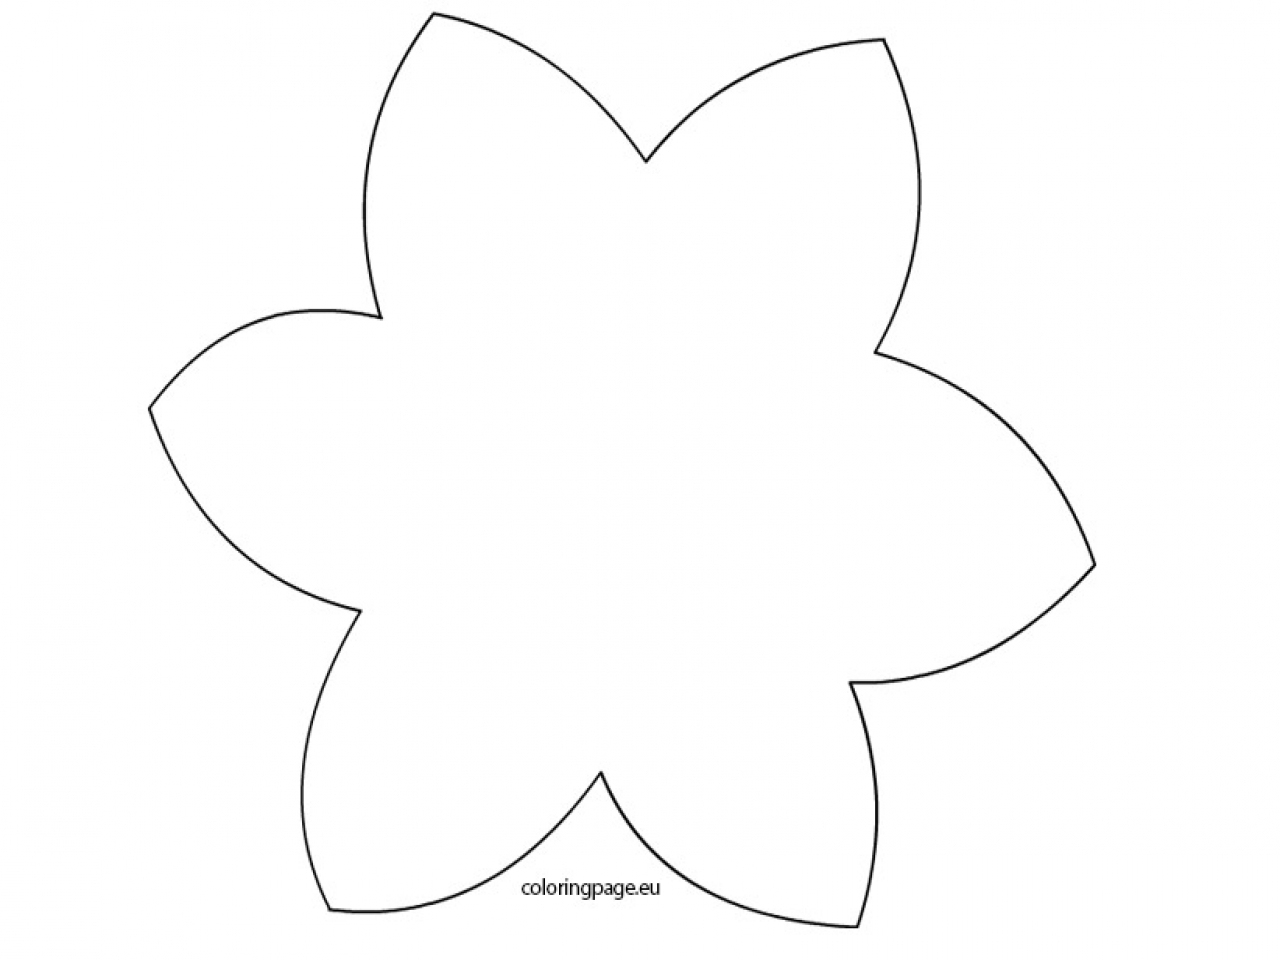 1280x960 daffodil template to print daffodil drawing outline